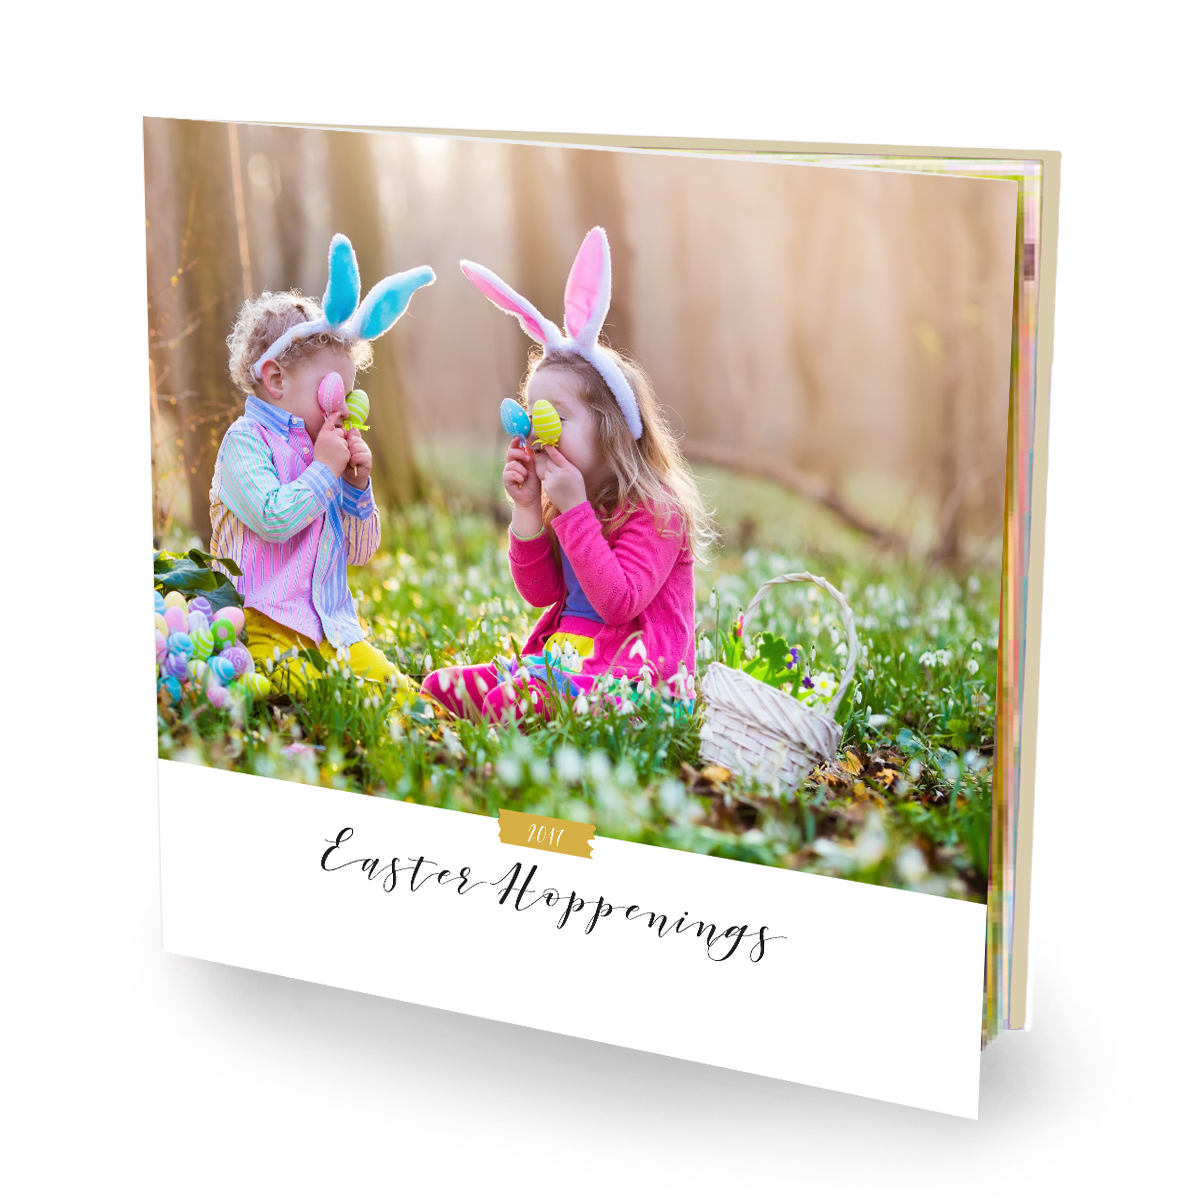 Easter - Easter Happenings